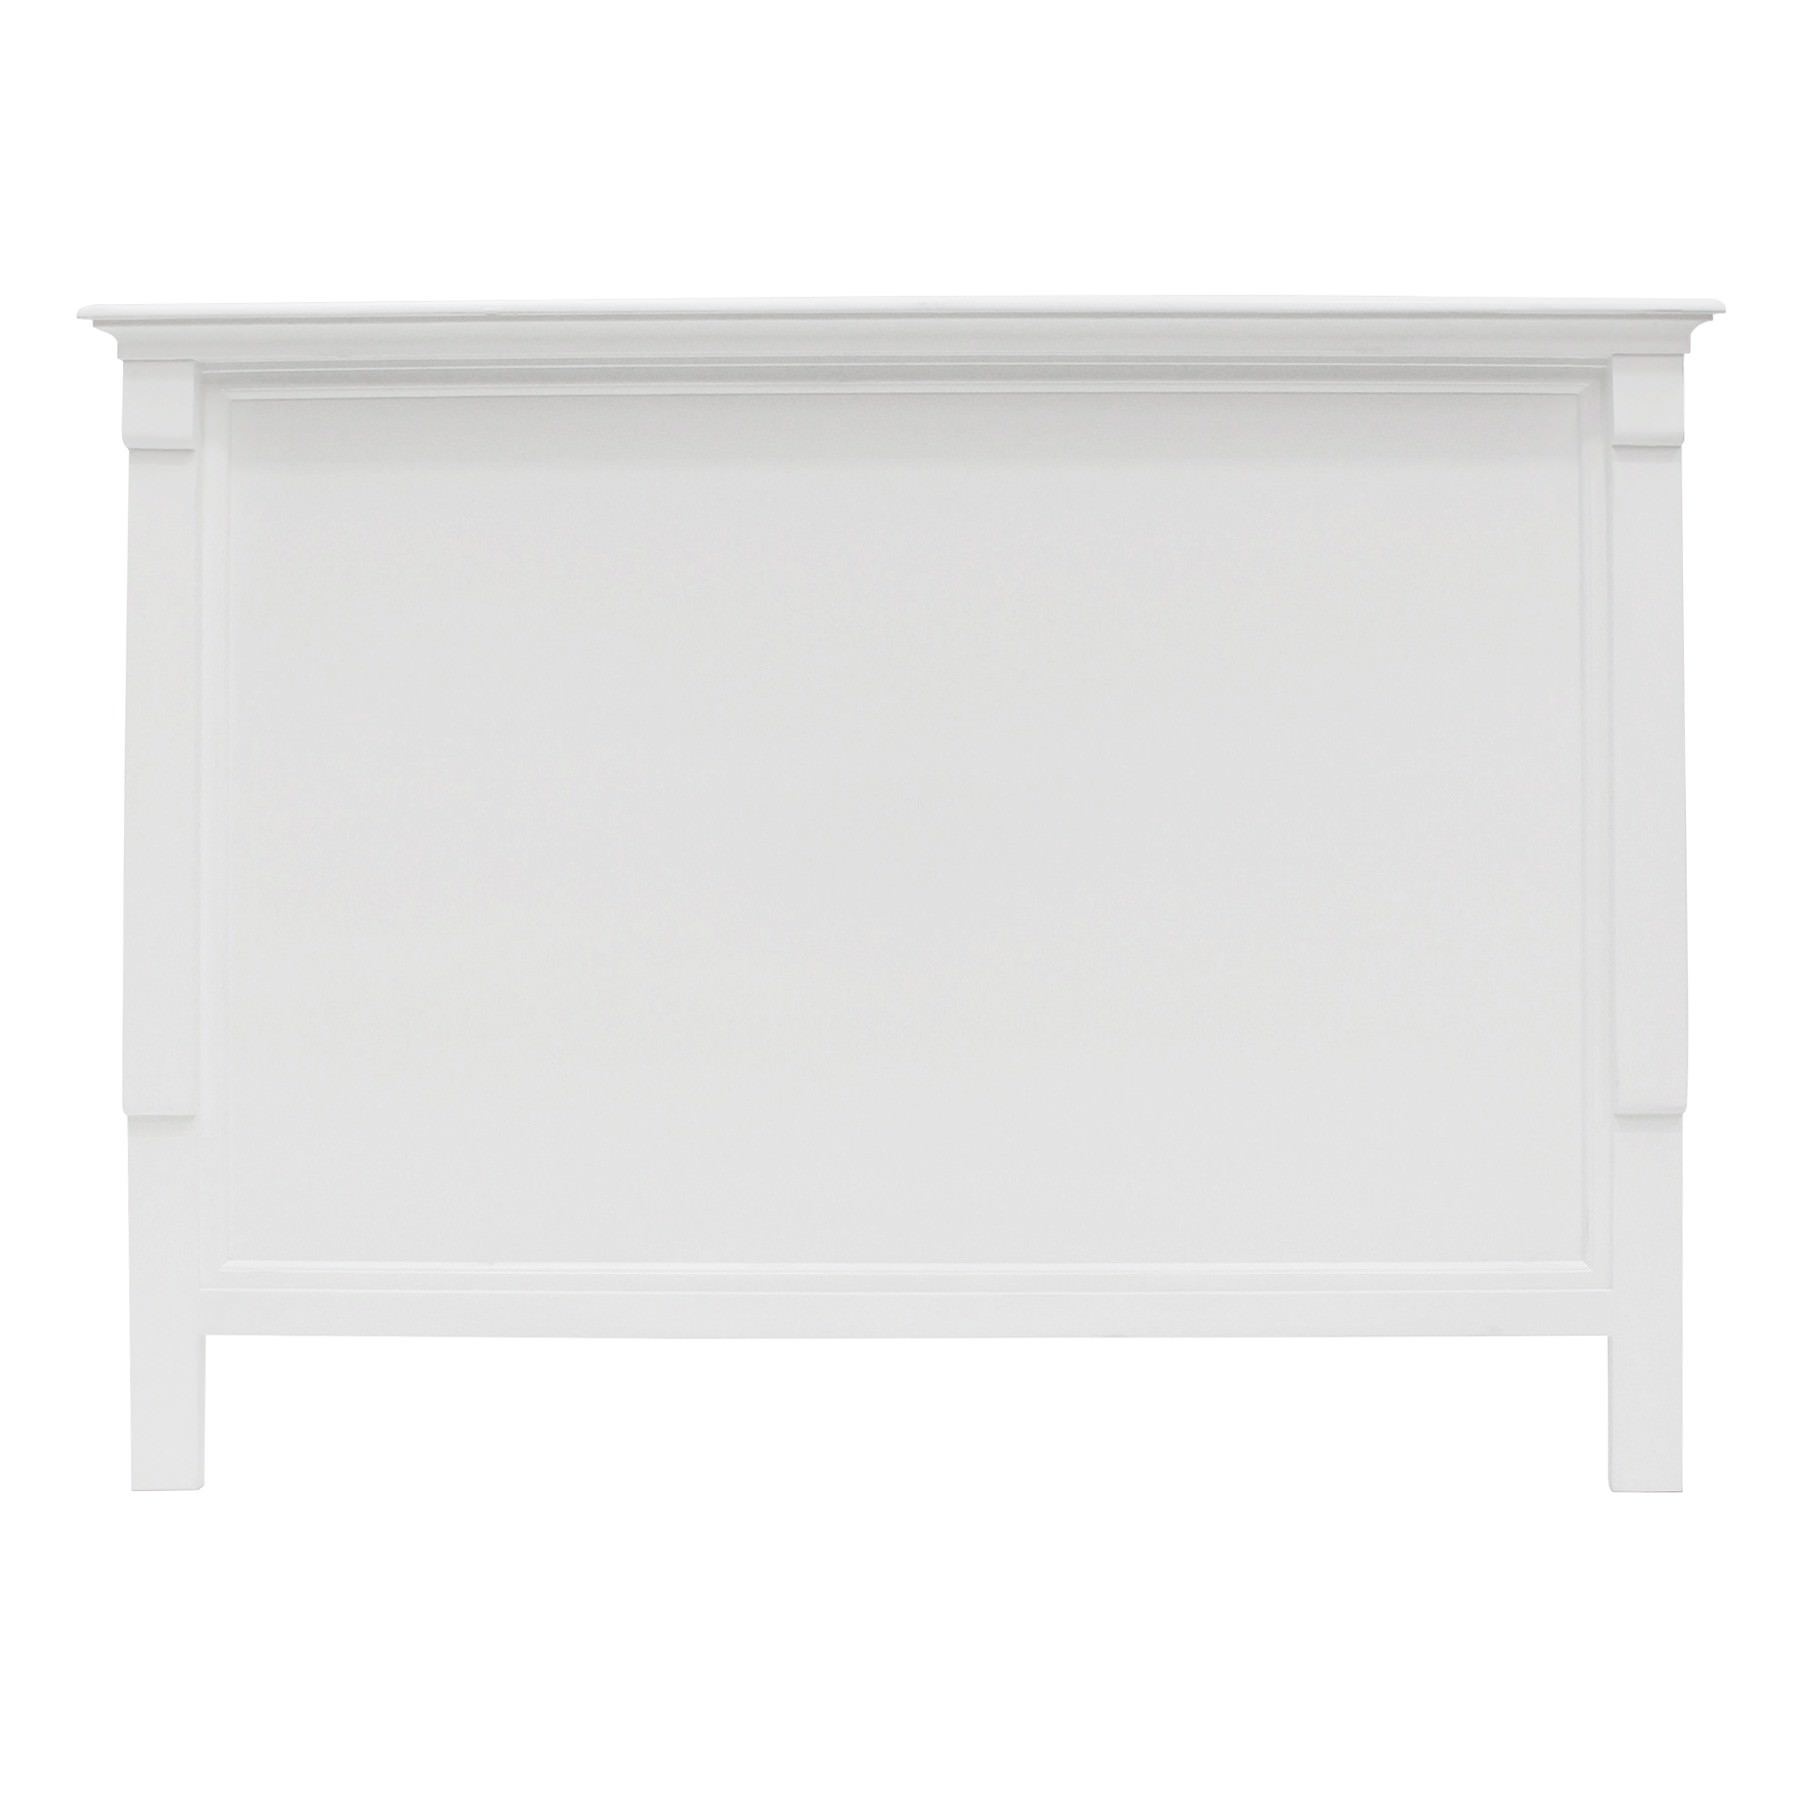 Belley Hand Crafted Mahogany Timber Bed Headboard, King, White